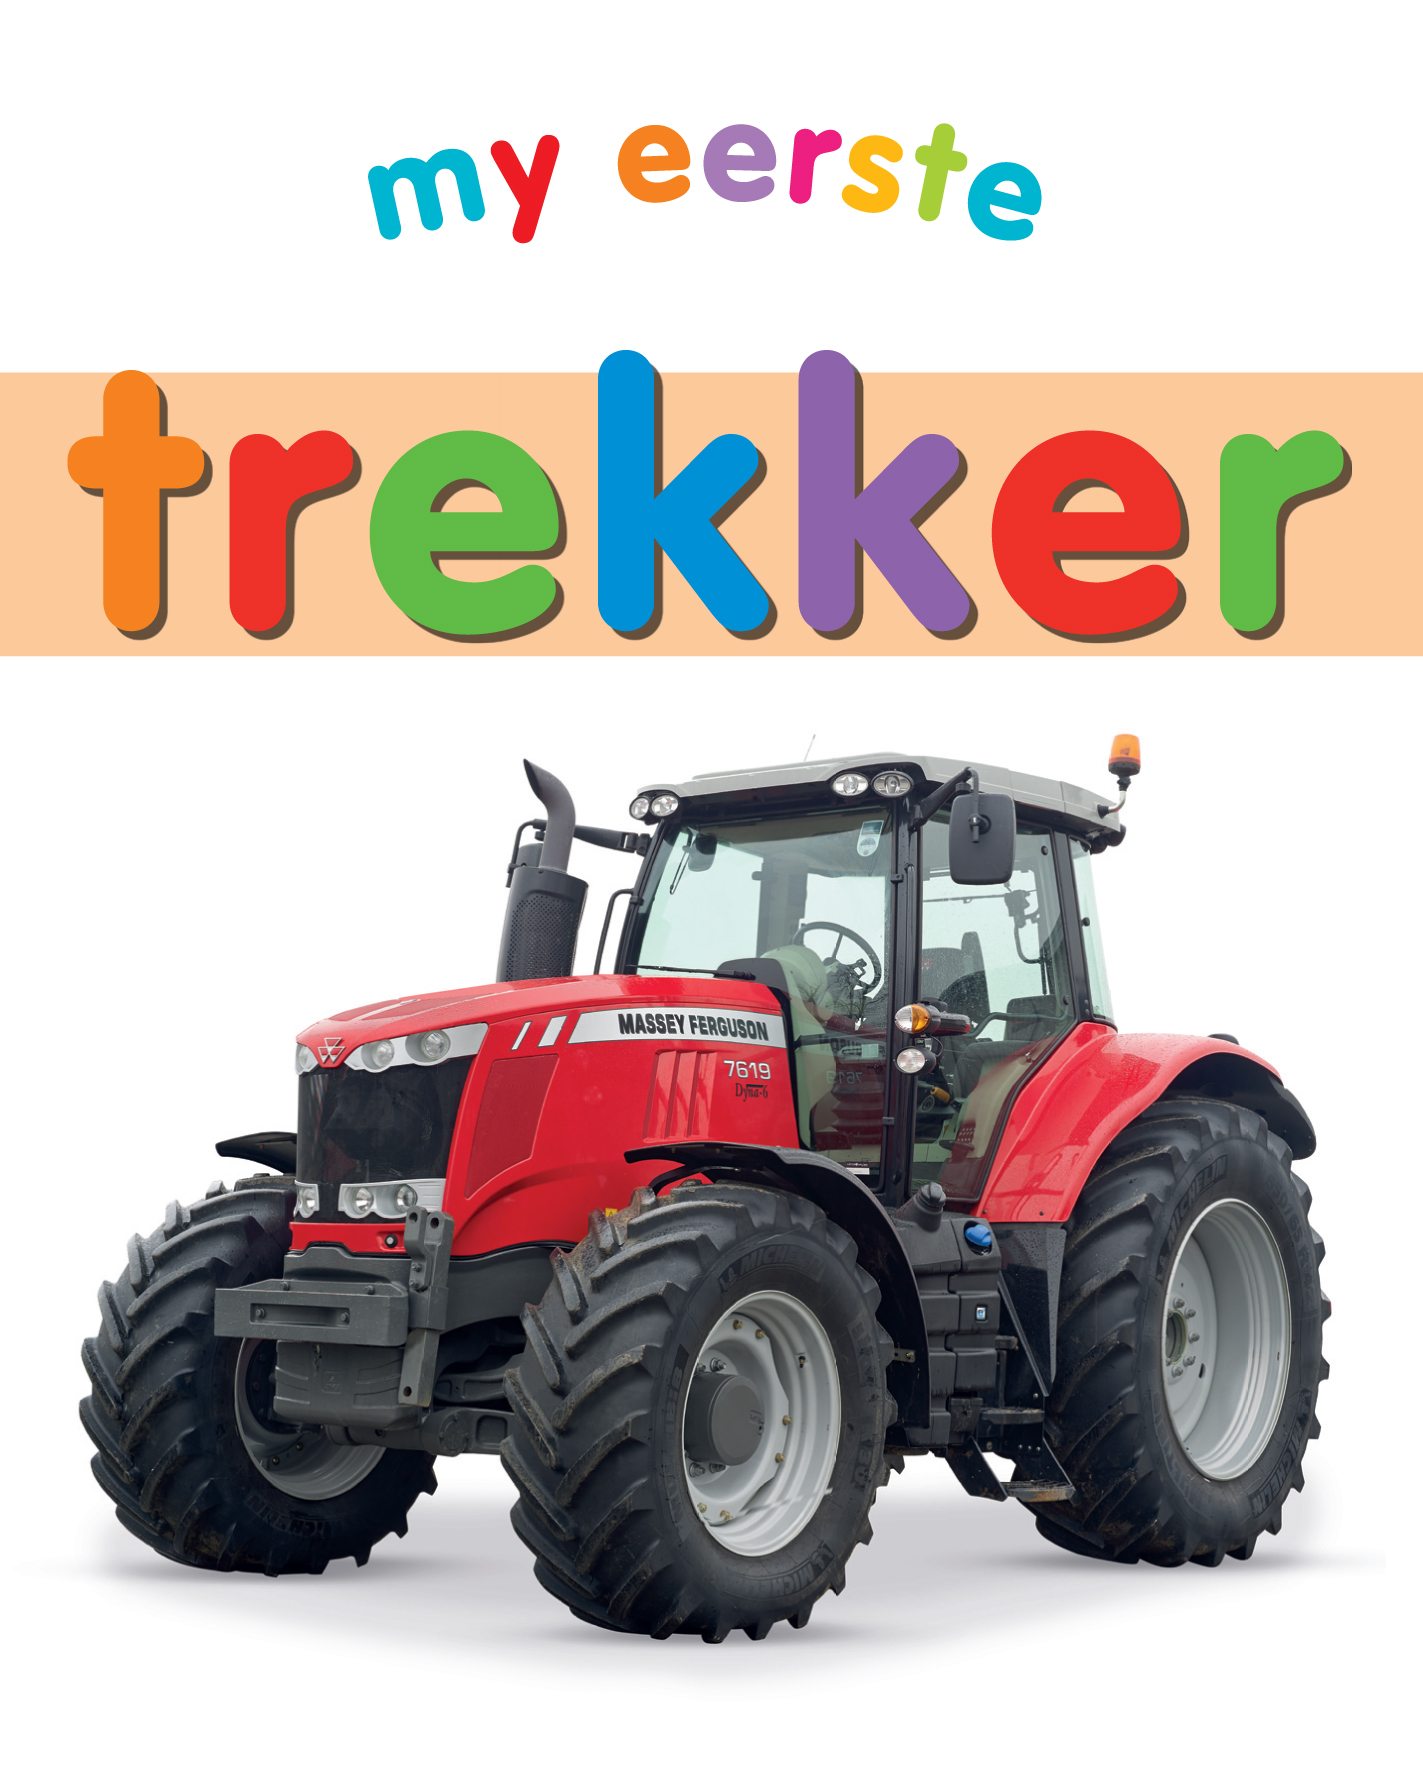 Picture of My eerste trekker